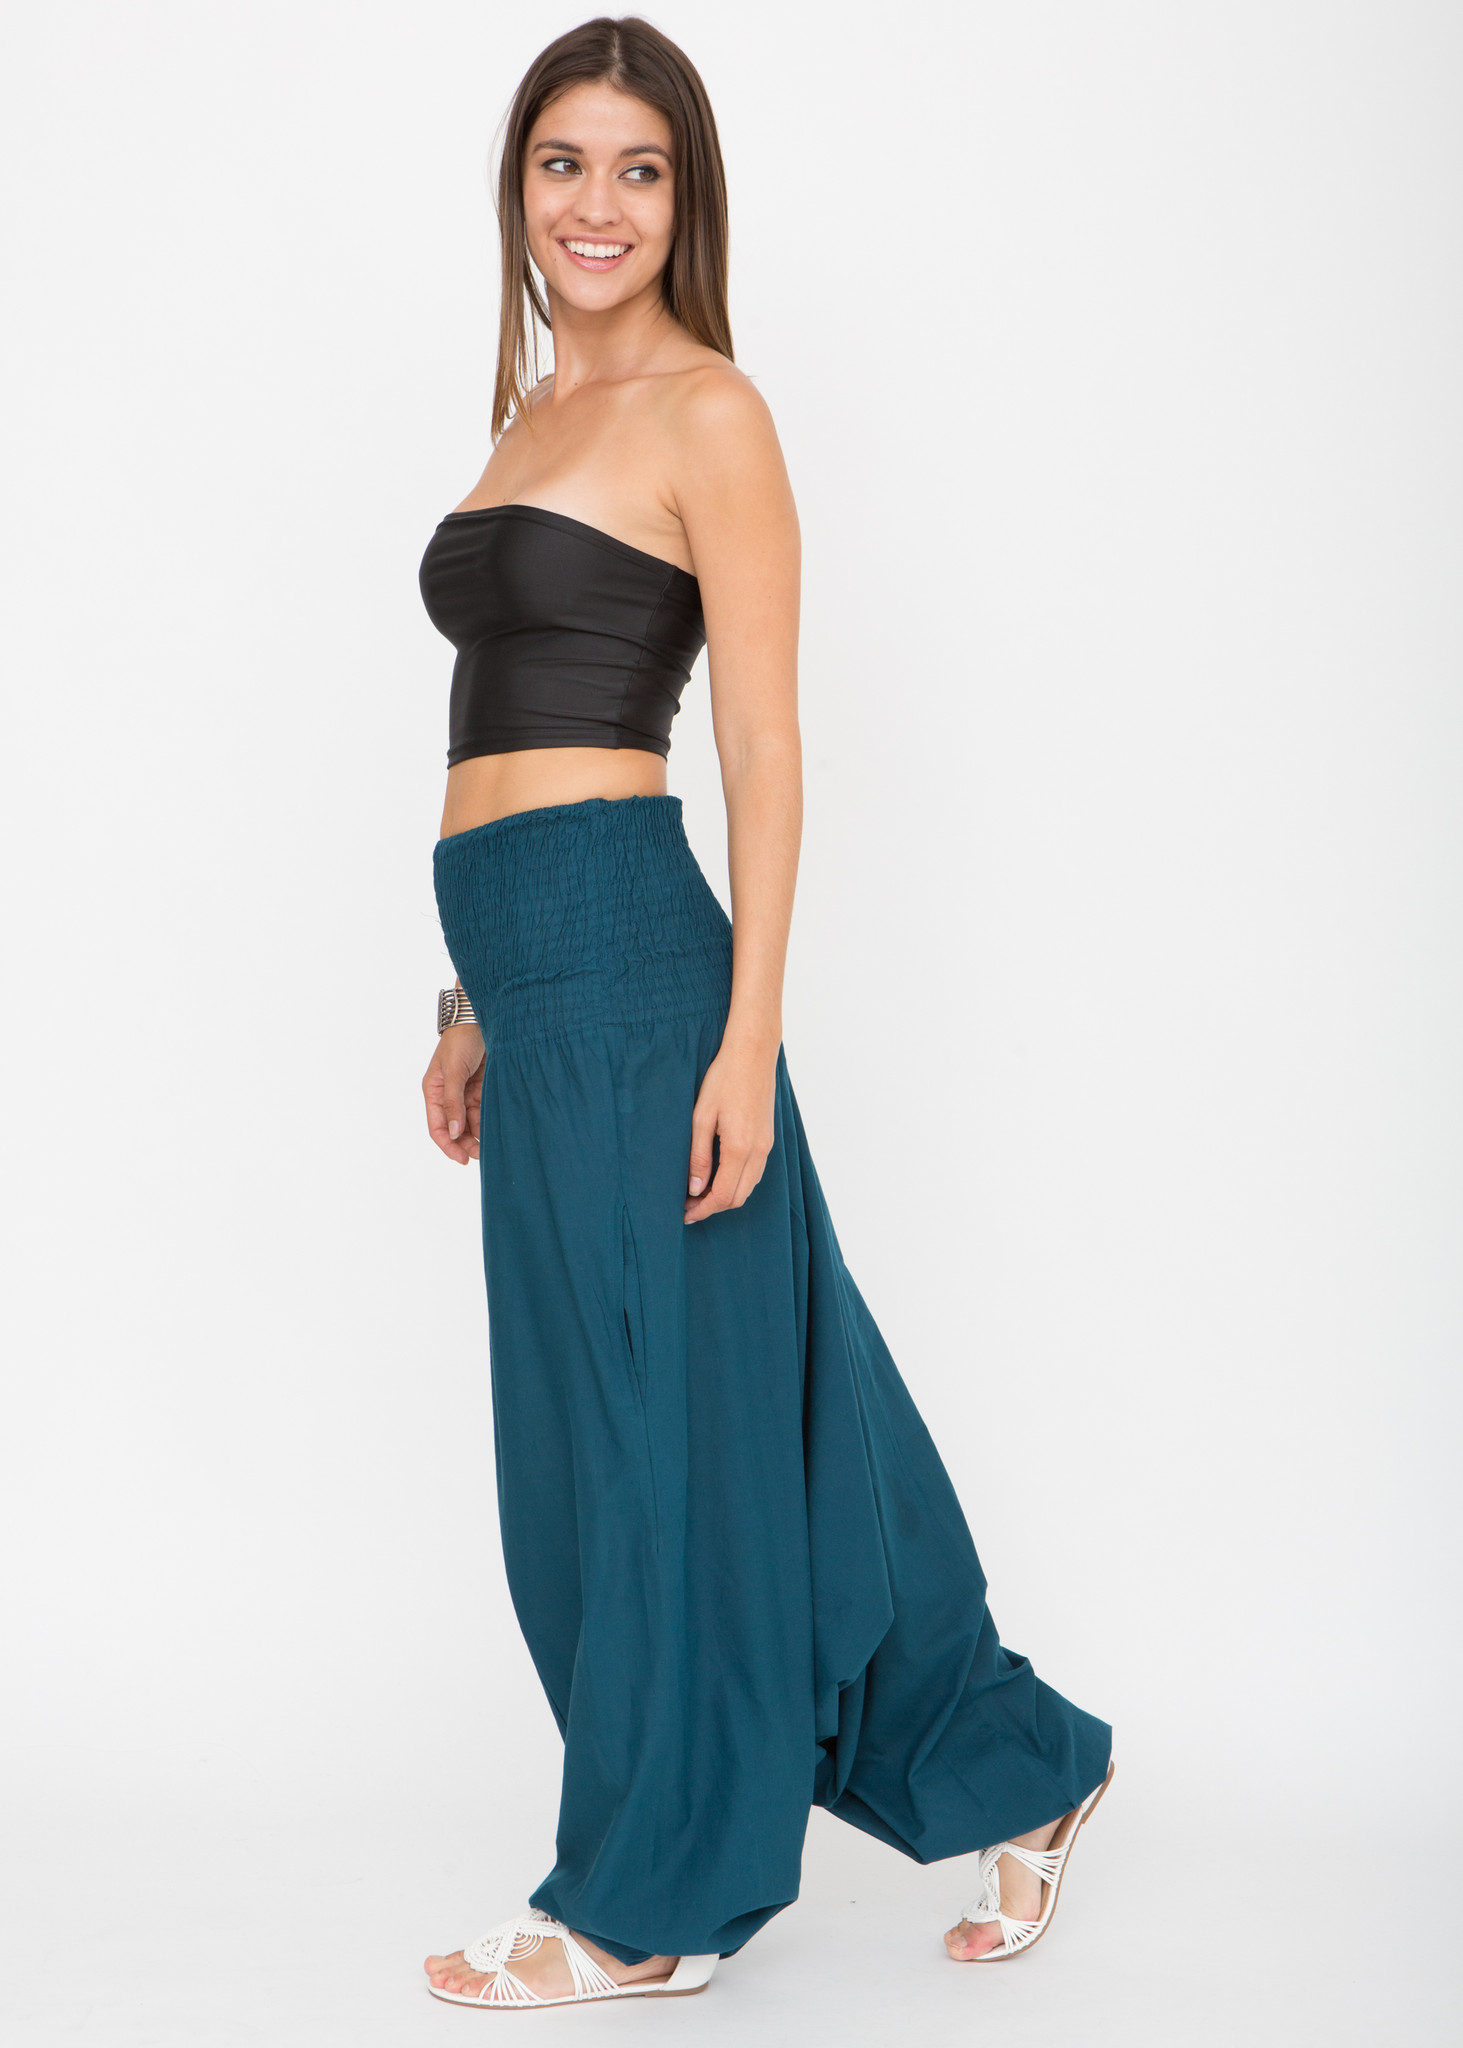 adc8cdeb2a 2 in 1 Cotton Maxi Harem Trouser Jumpsuit Teal – likemary